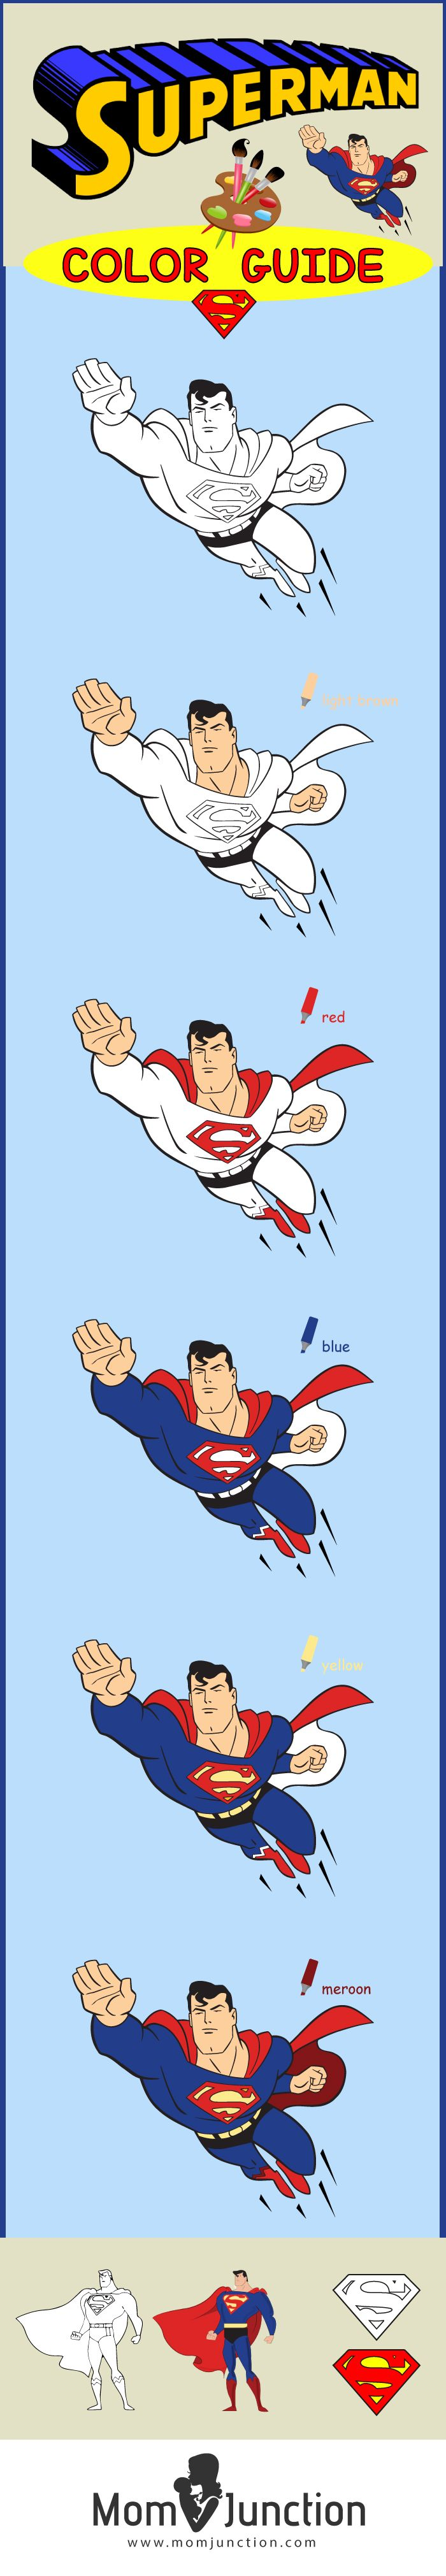 Superman s coloring pages - 613 Best Super Room Images On Pinterest Superhero Room Superhero Classroom And Comic Books